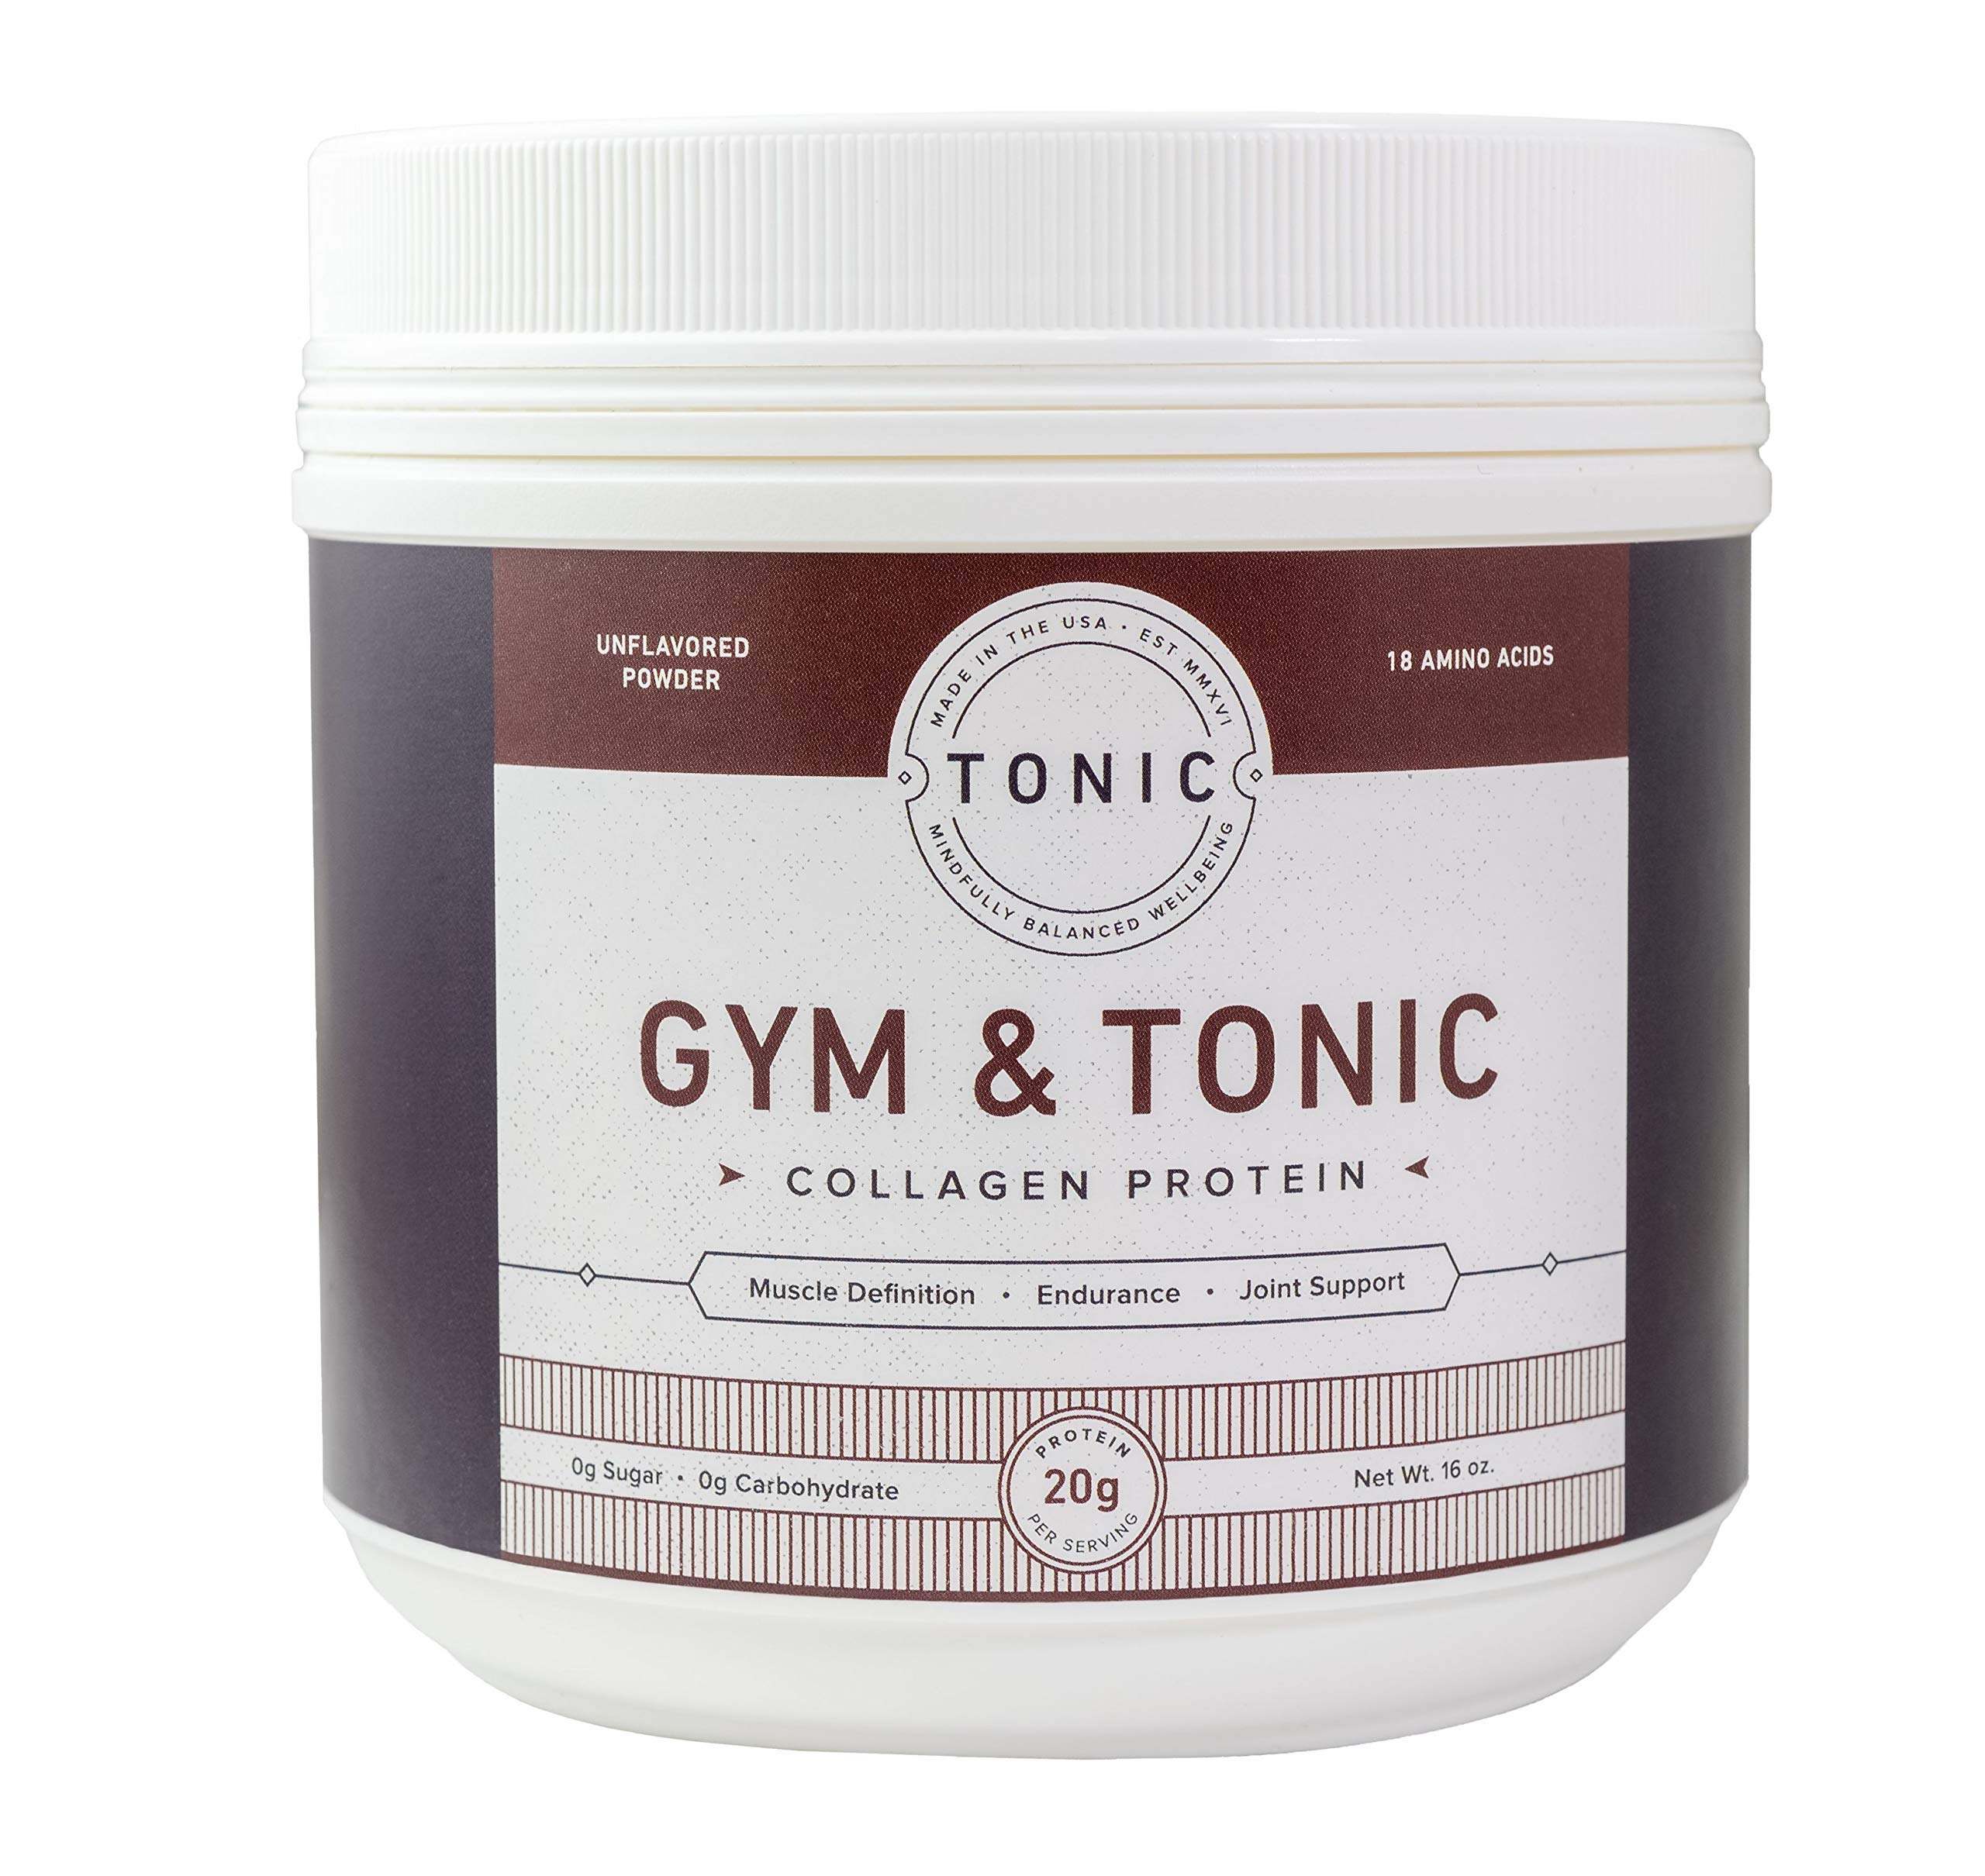 Tonic: Gym & Tonic Collagen Powder & Alternative to Whey Protein Powder, Paleo + Keto Friendly, Muscle Building, Bulletproof Collagen, Unflavored, 20 Servings